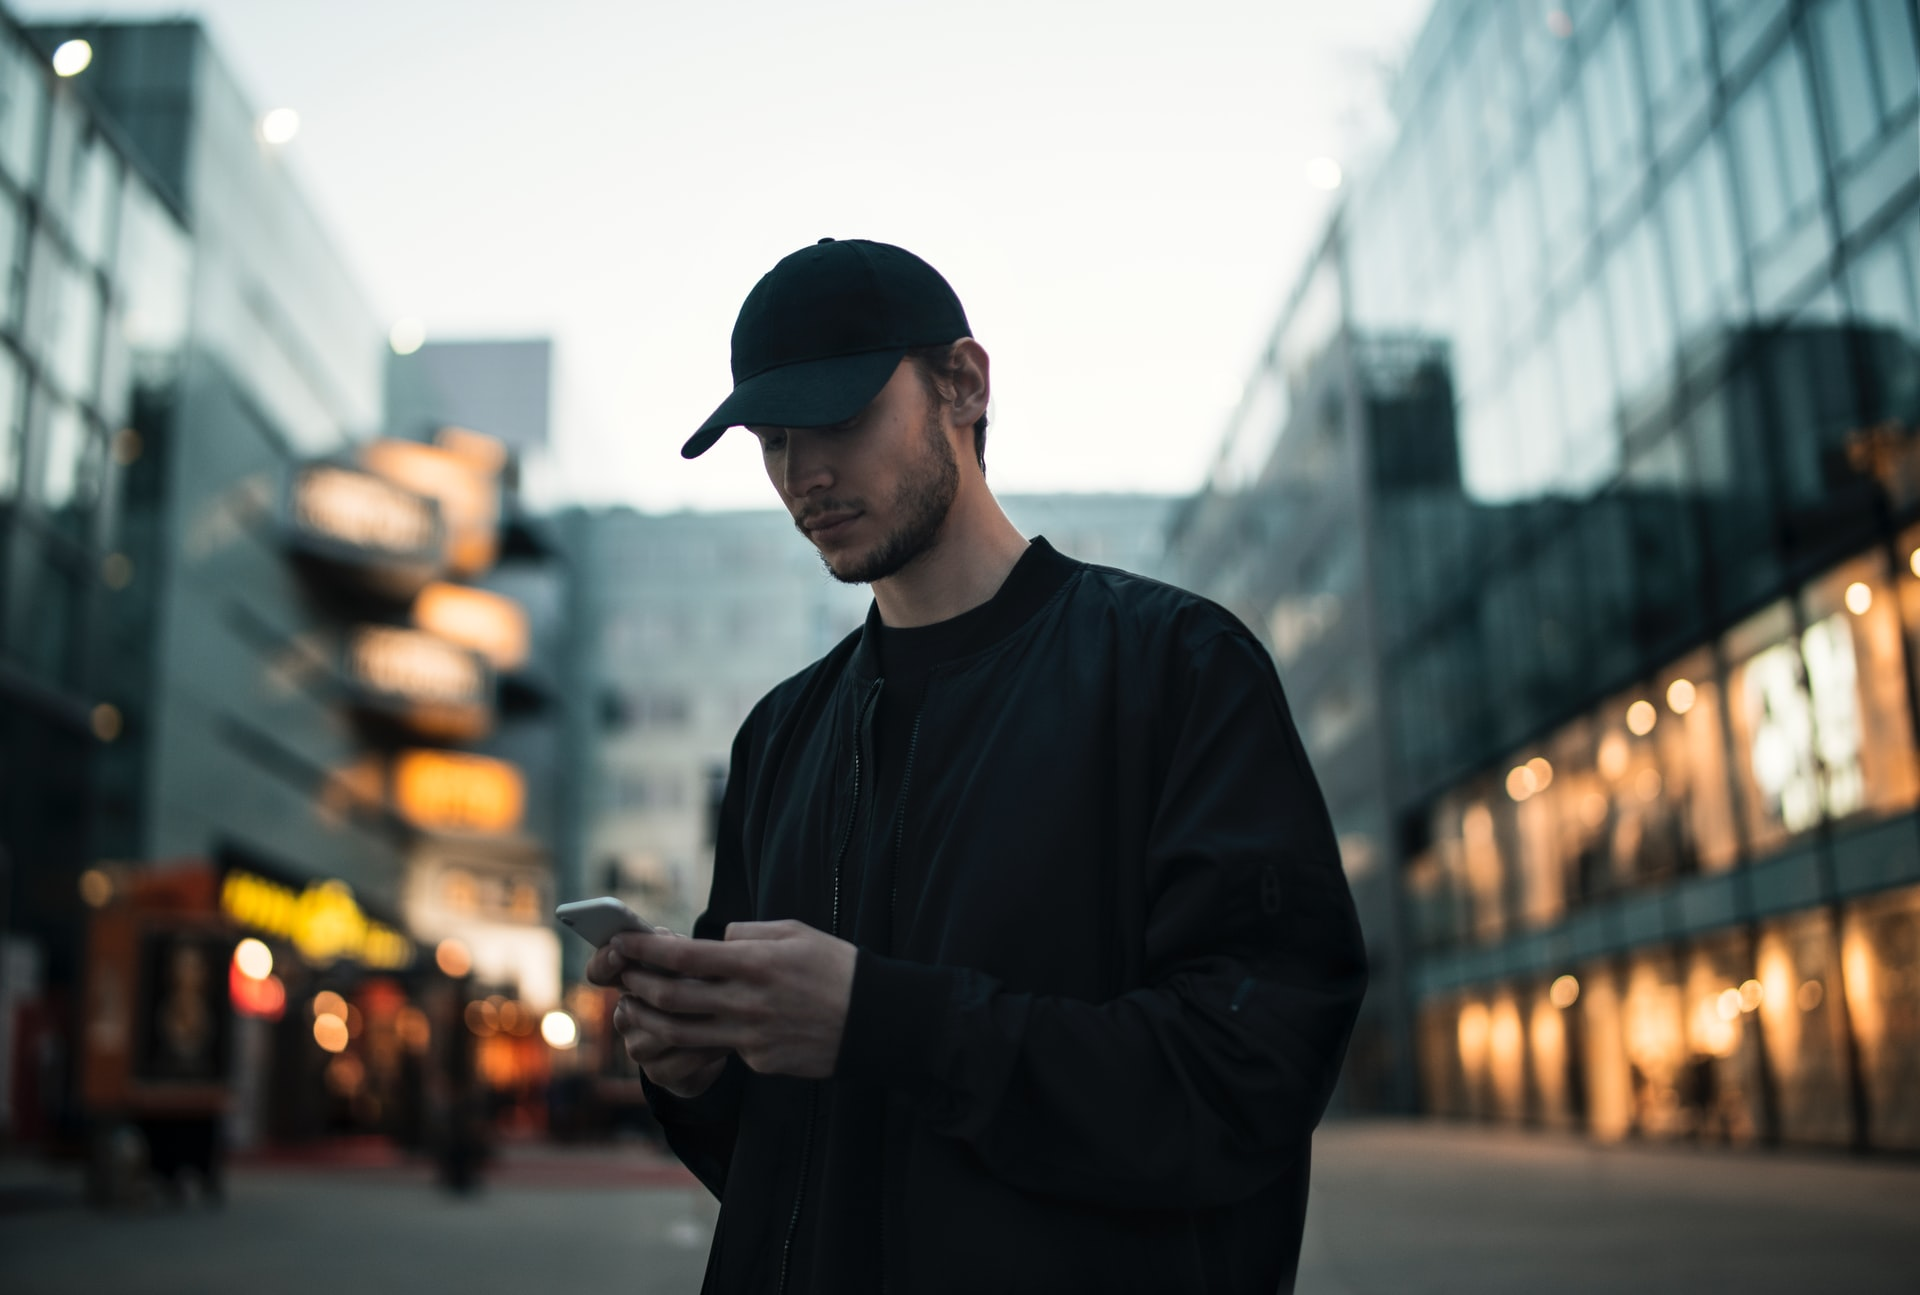 An image of a person wearing all black in a city using a cell phone